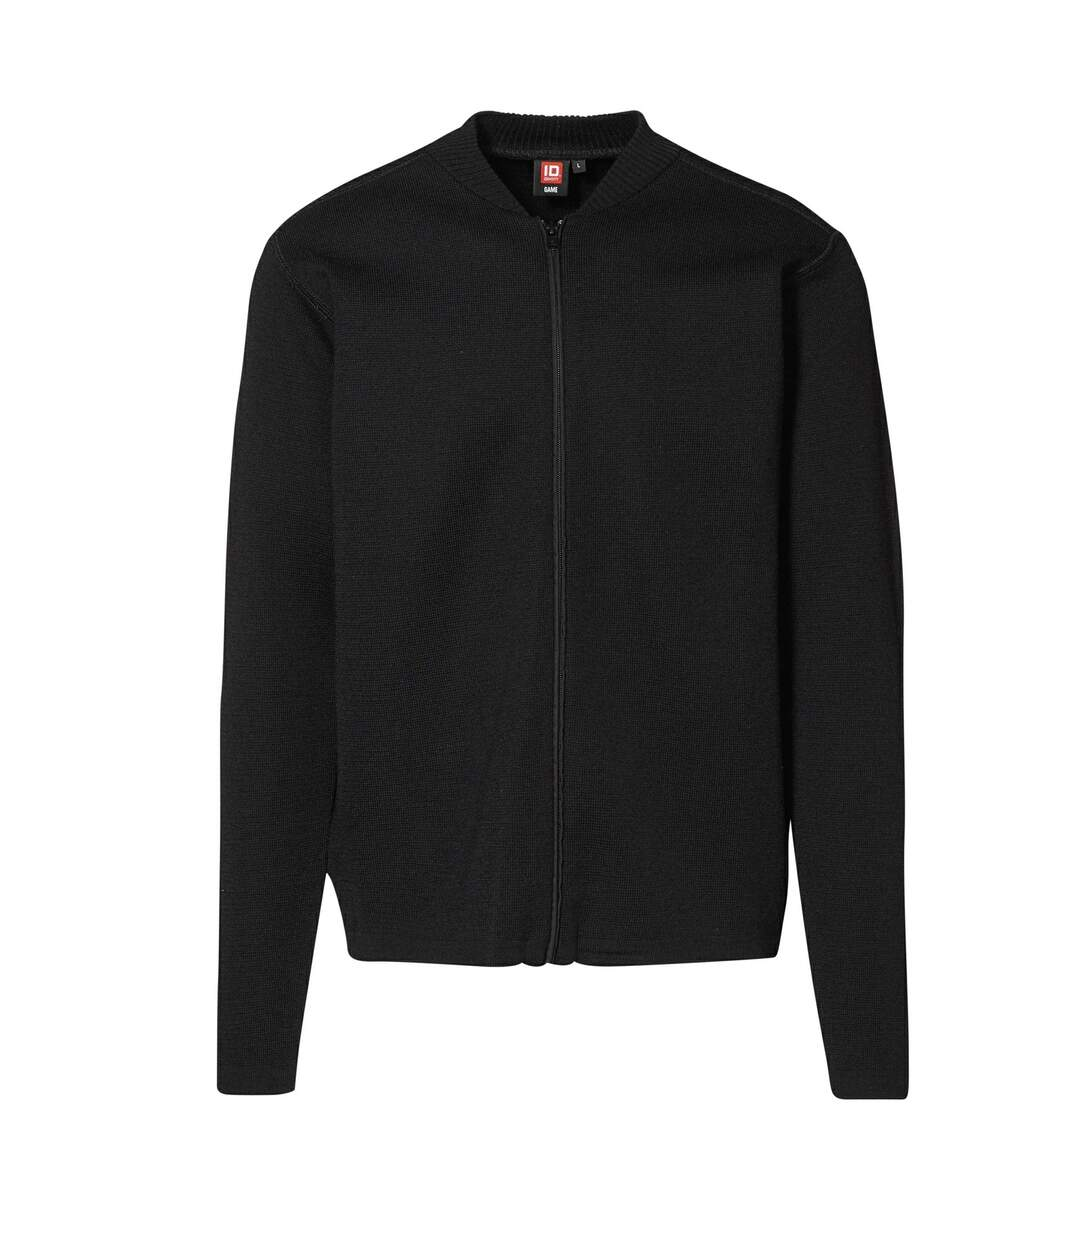 ID Mens Fitted Full Zip Knitted Cardigan (Black) - UTID396